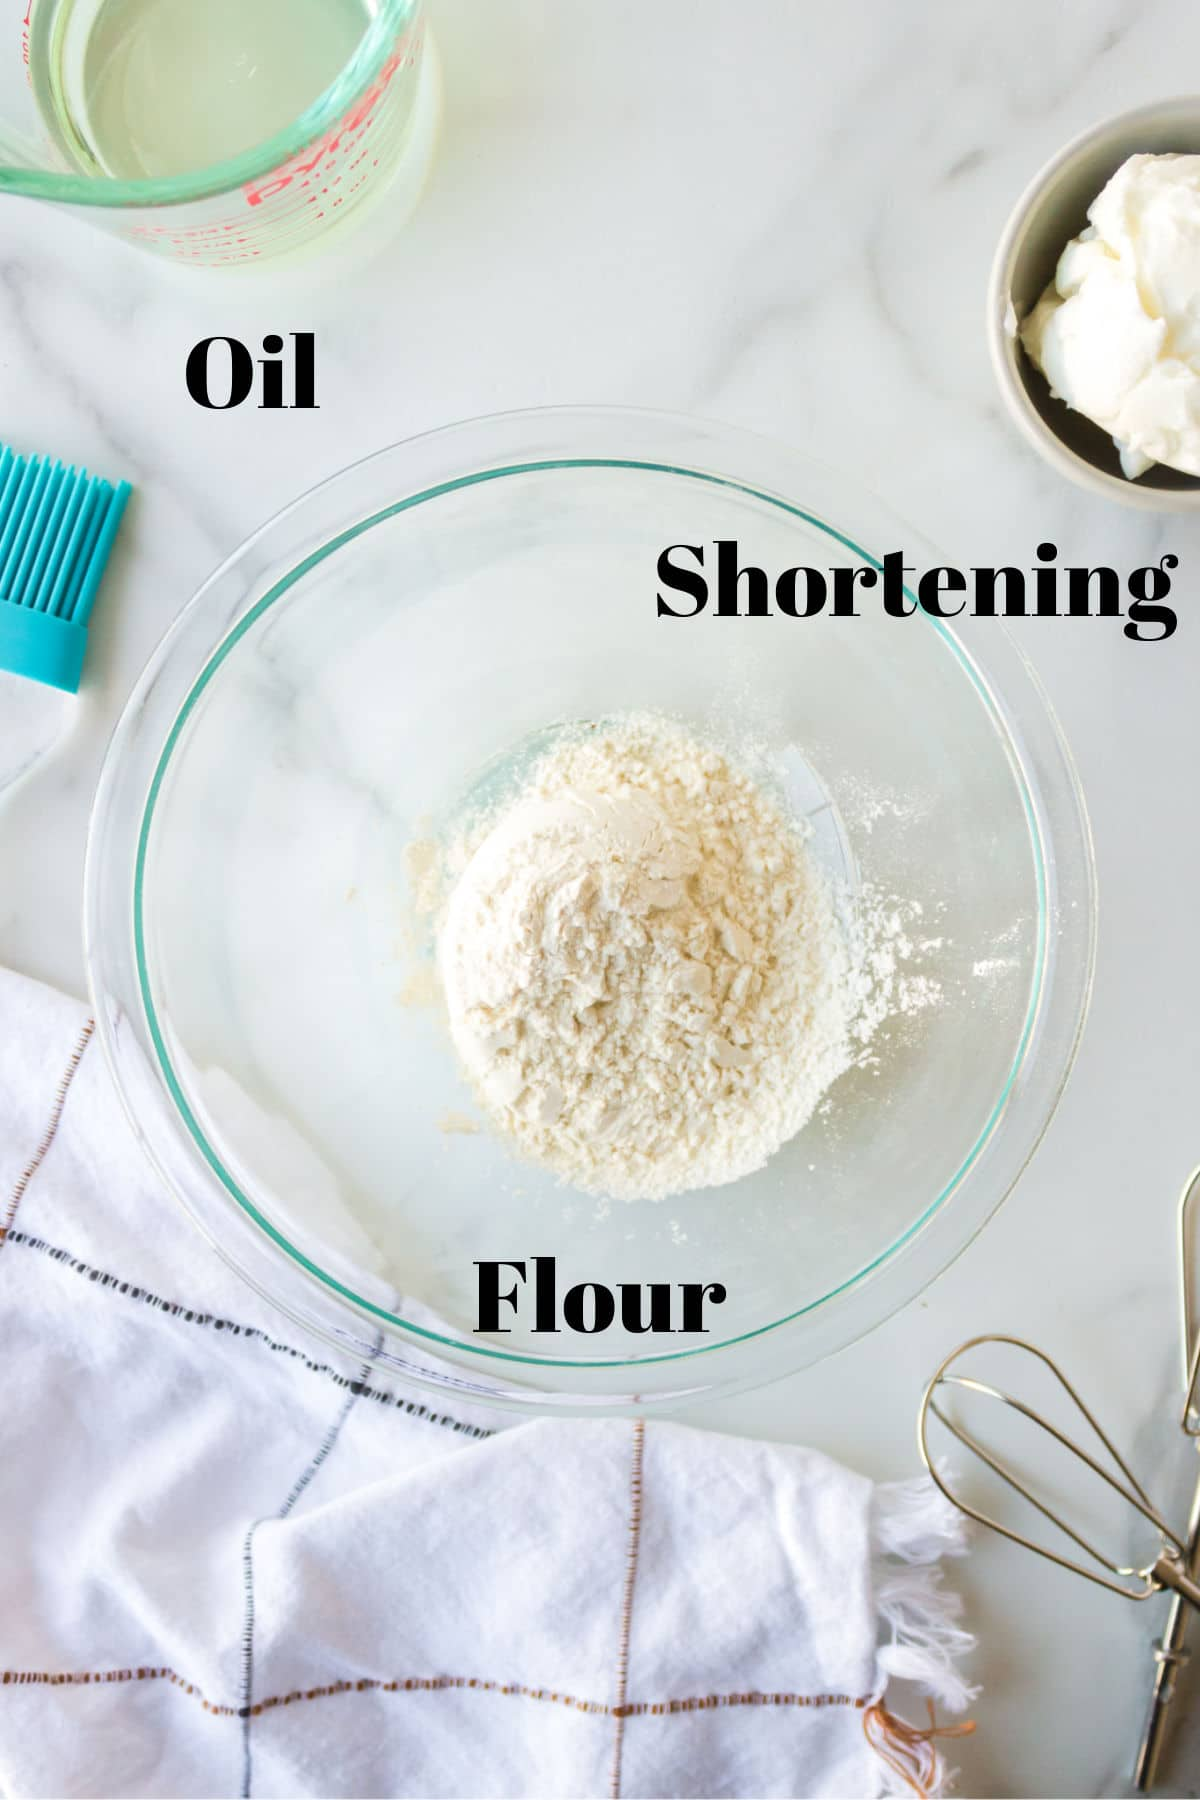 Photo of oil shortening and flour in dishes with labels.